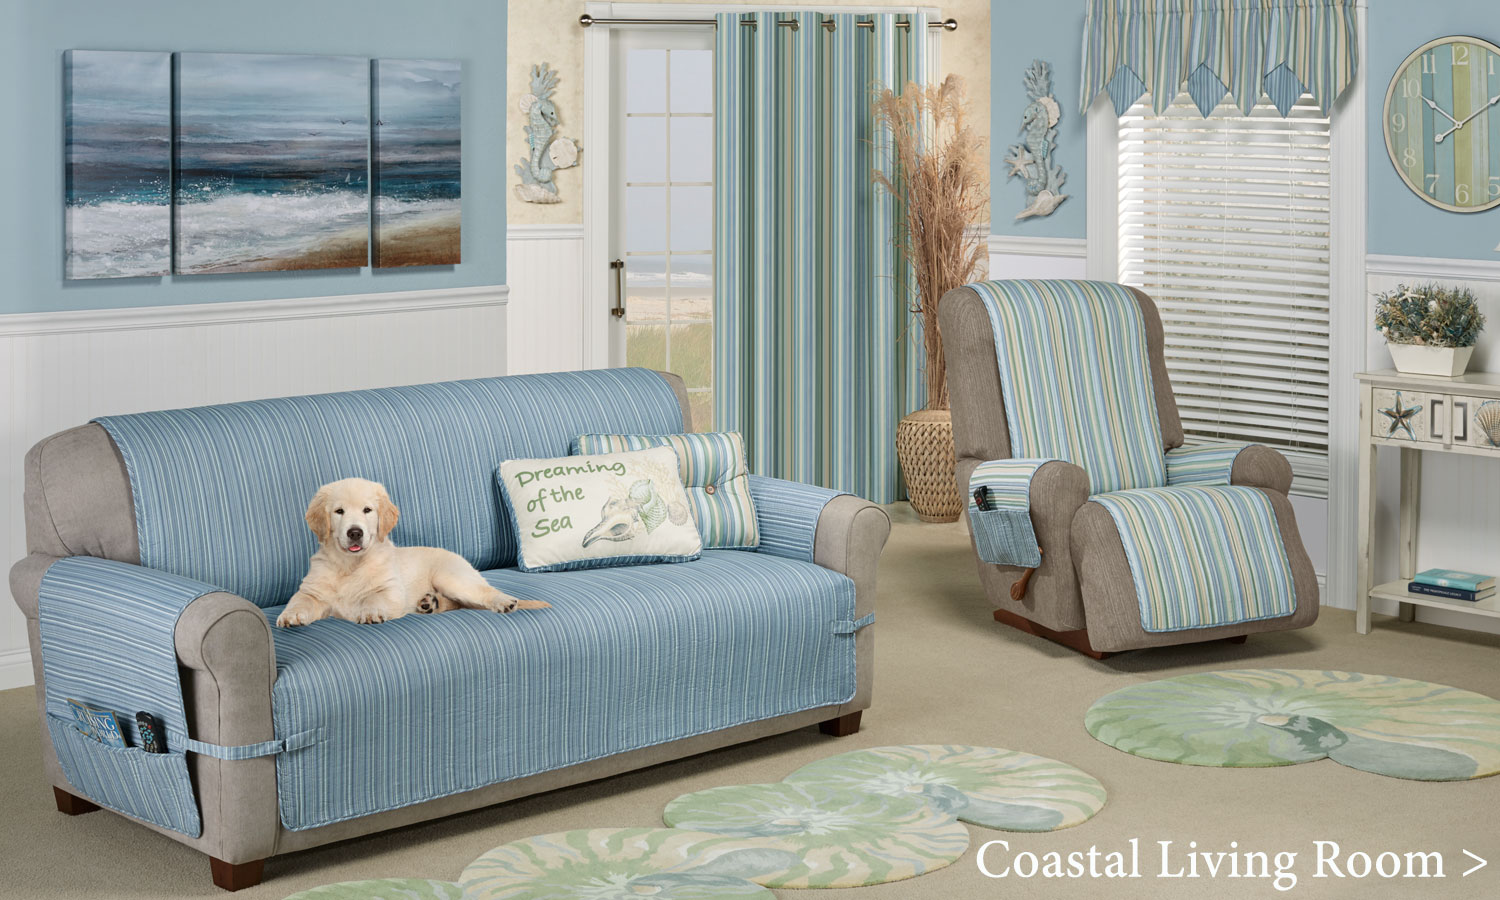 Coastal Style Decorating and Coastal Home Decorating Tips | Touch ...